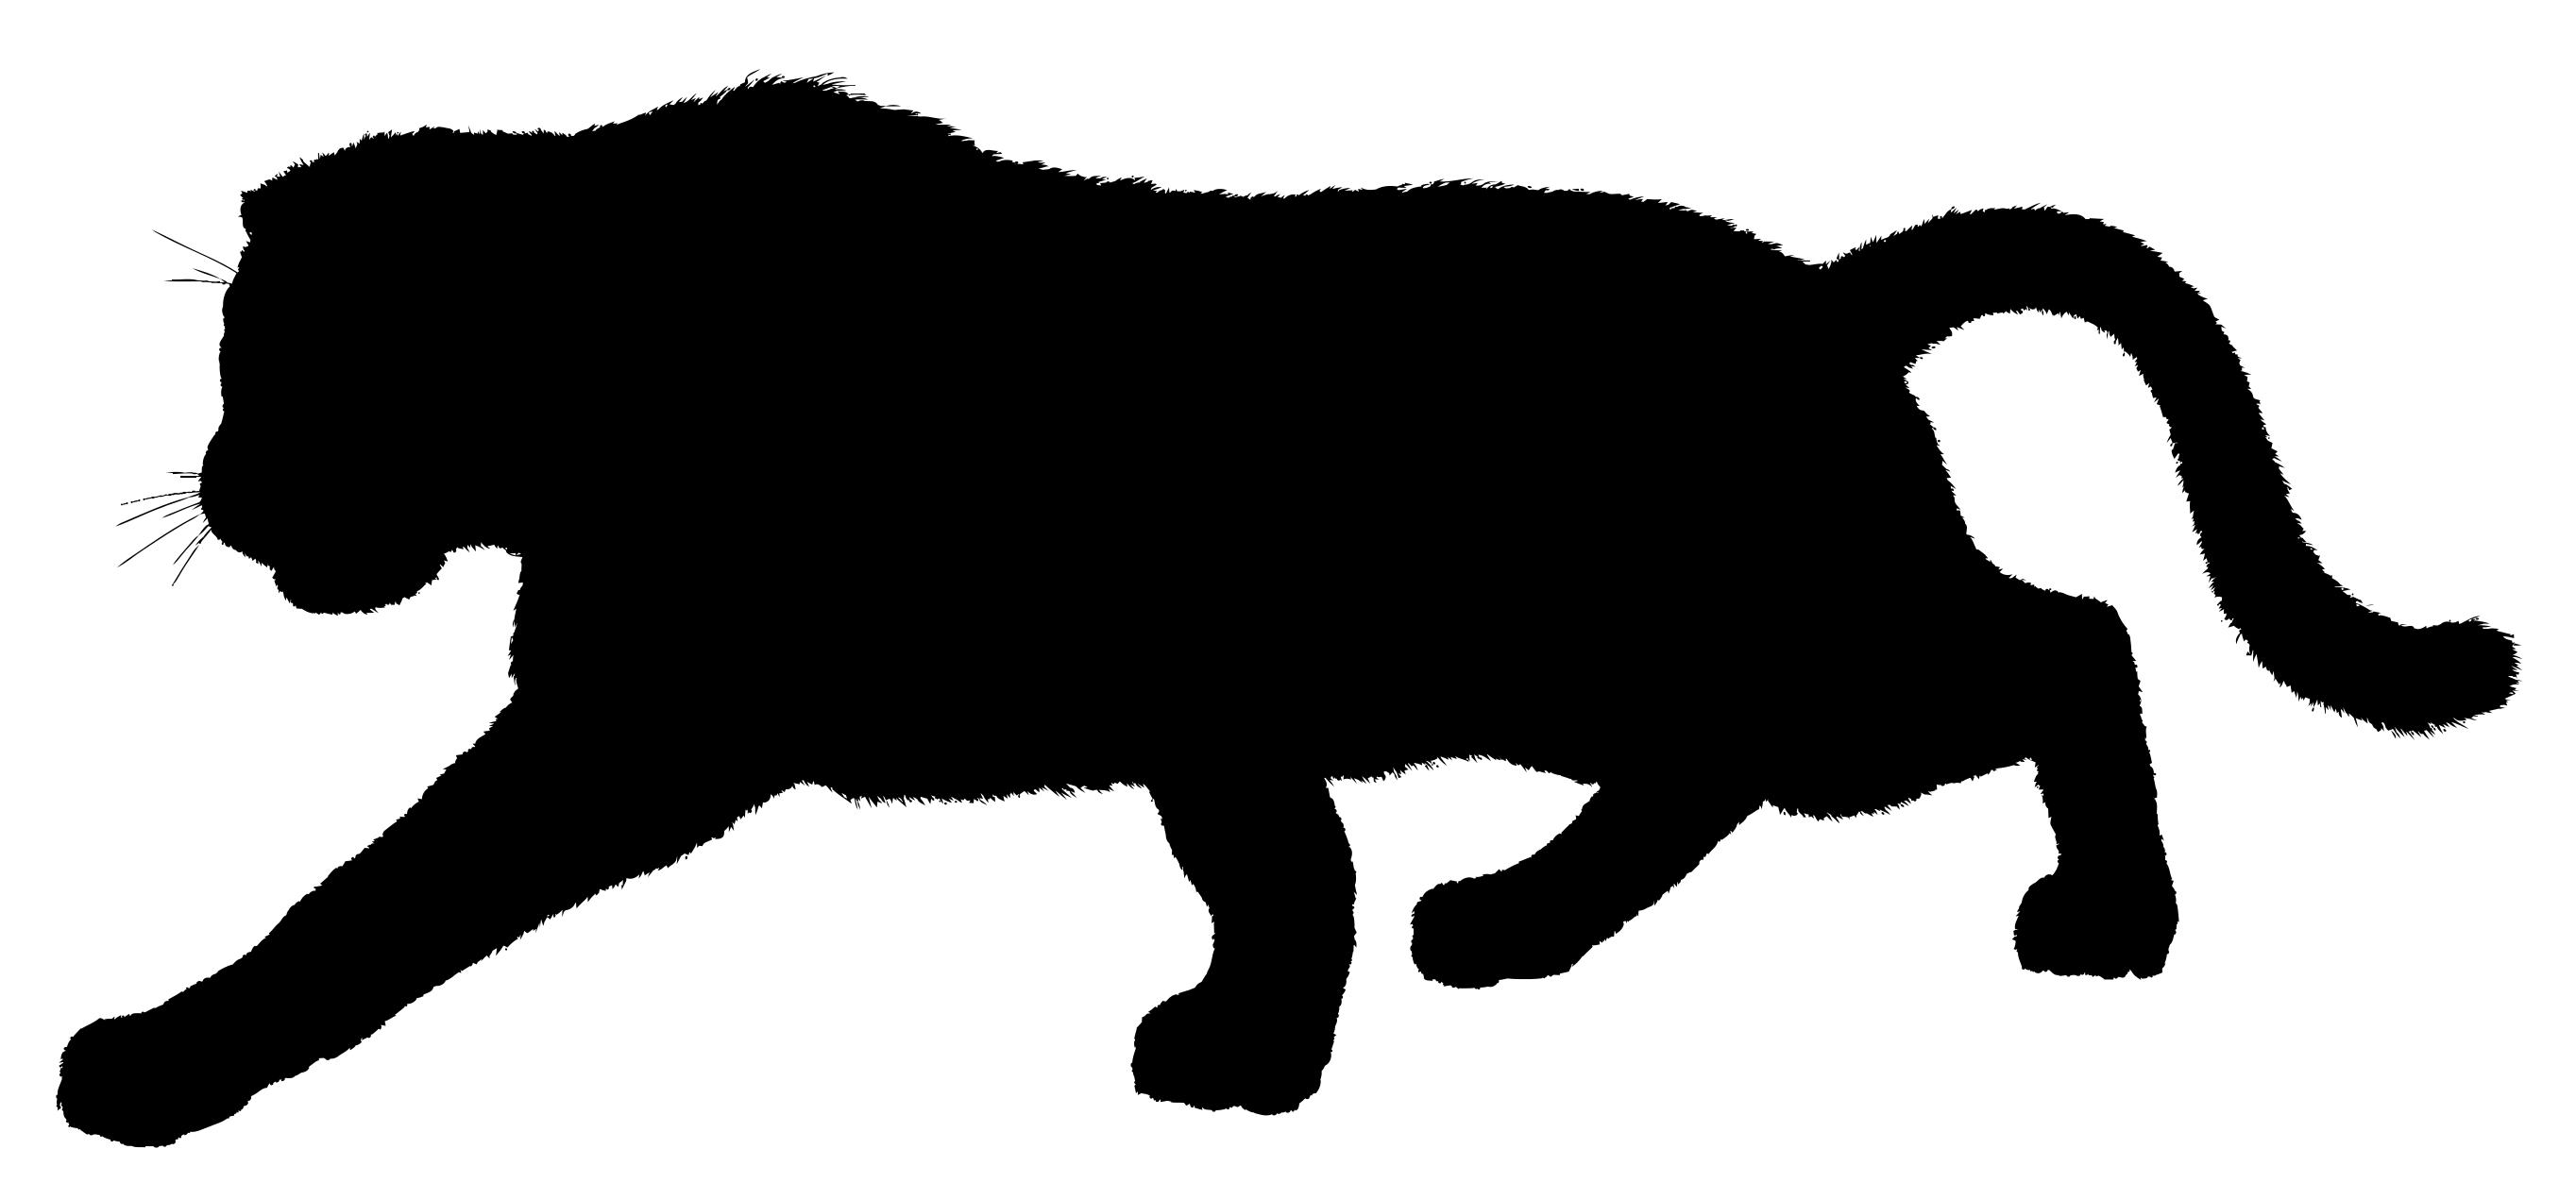 2728x1271 Furry Panther Silhouette Variation 2 Clipart